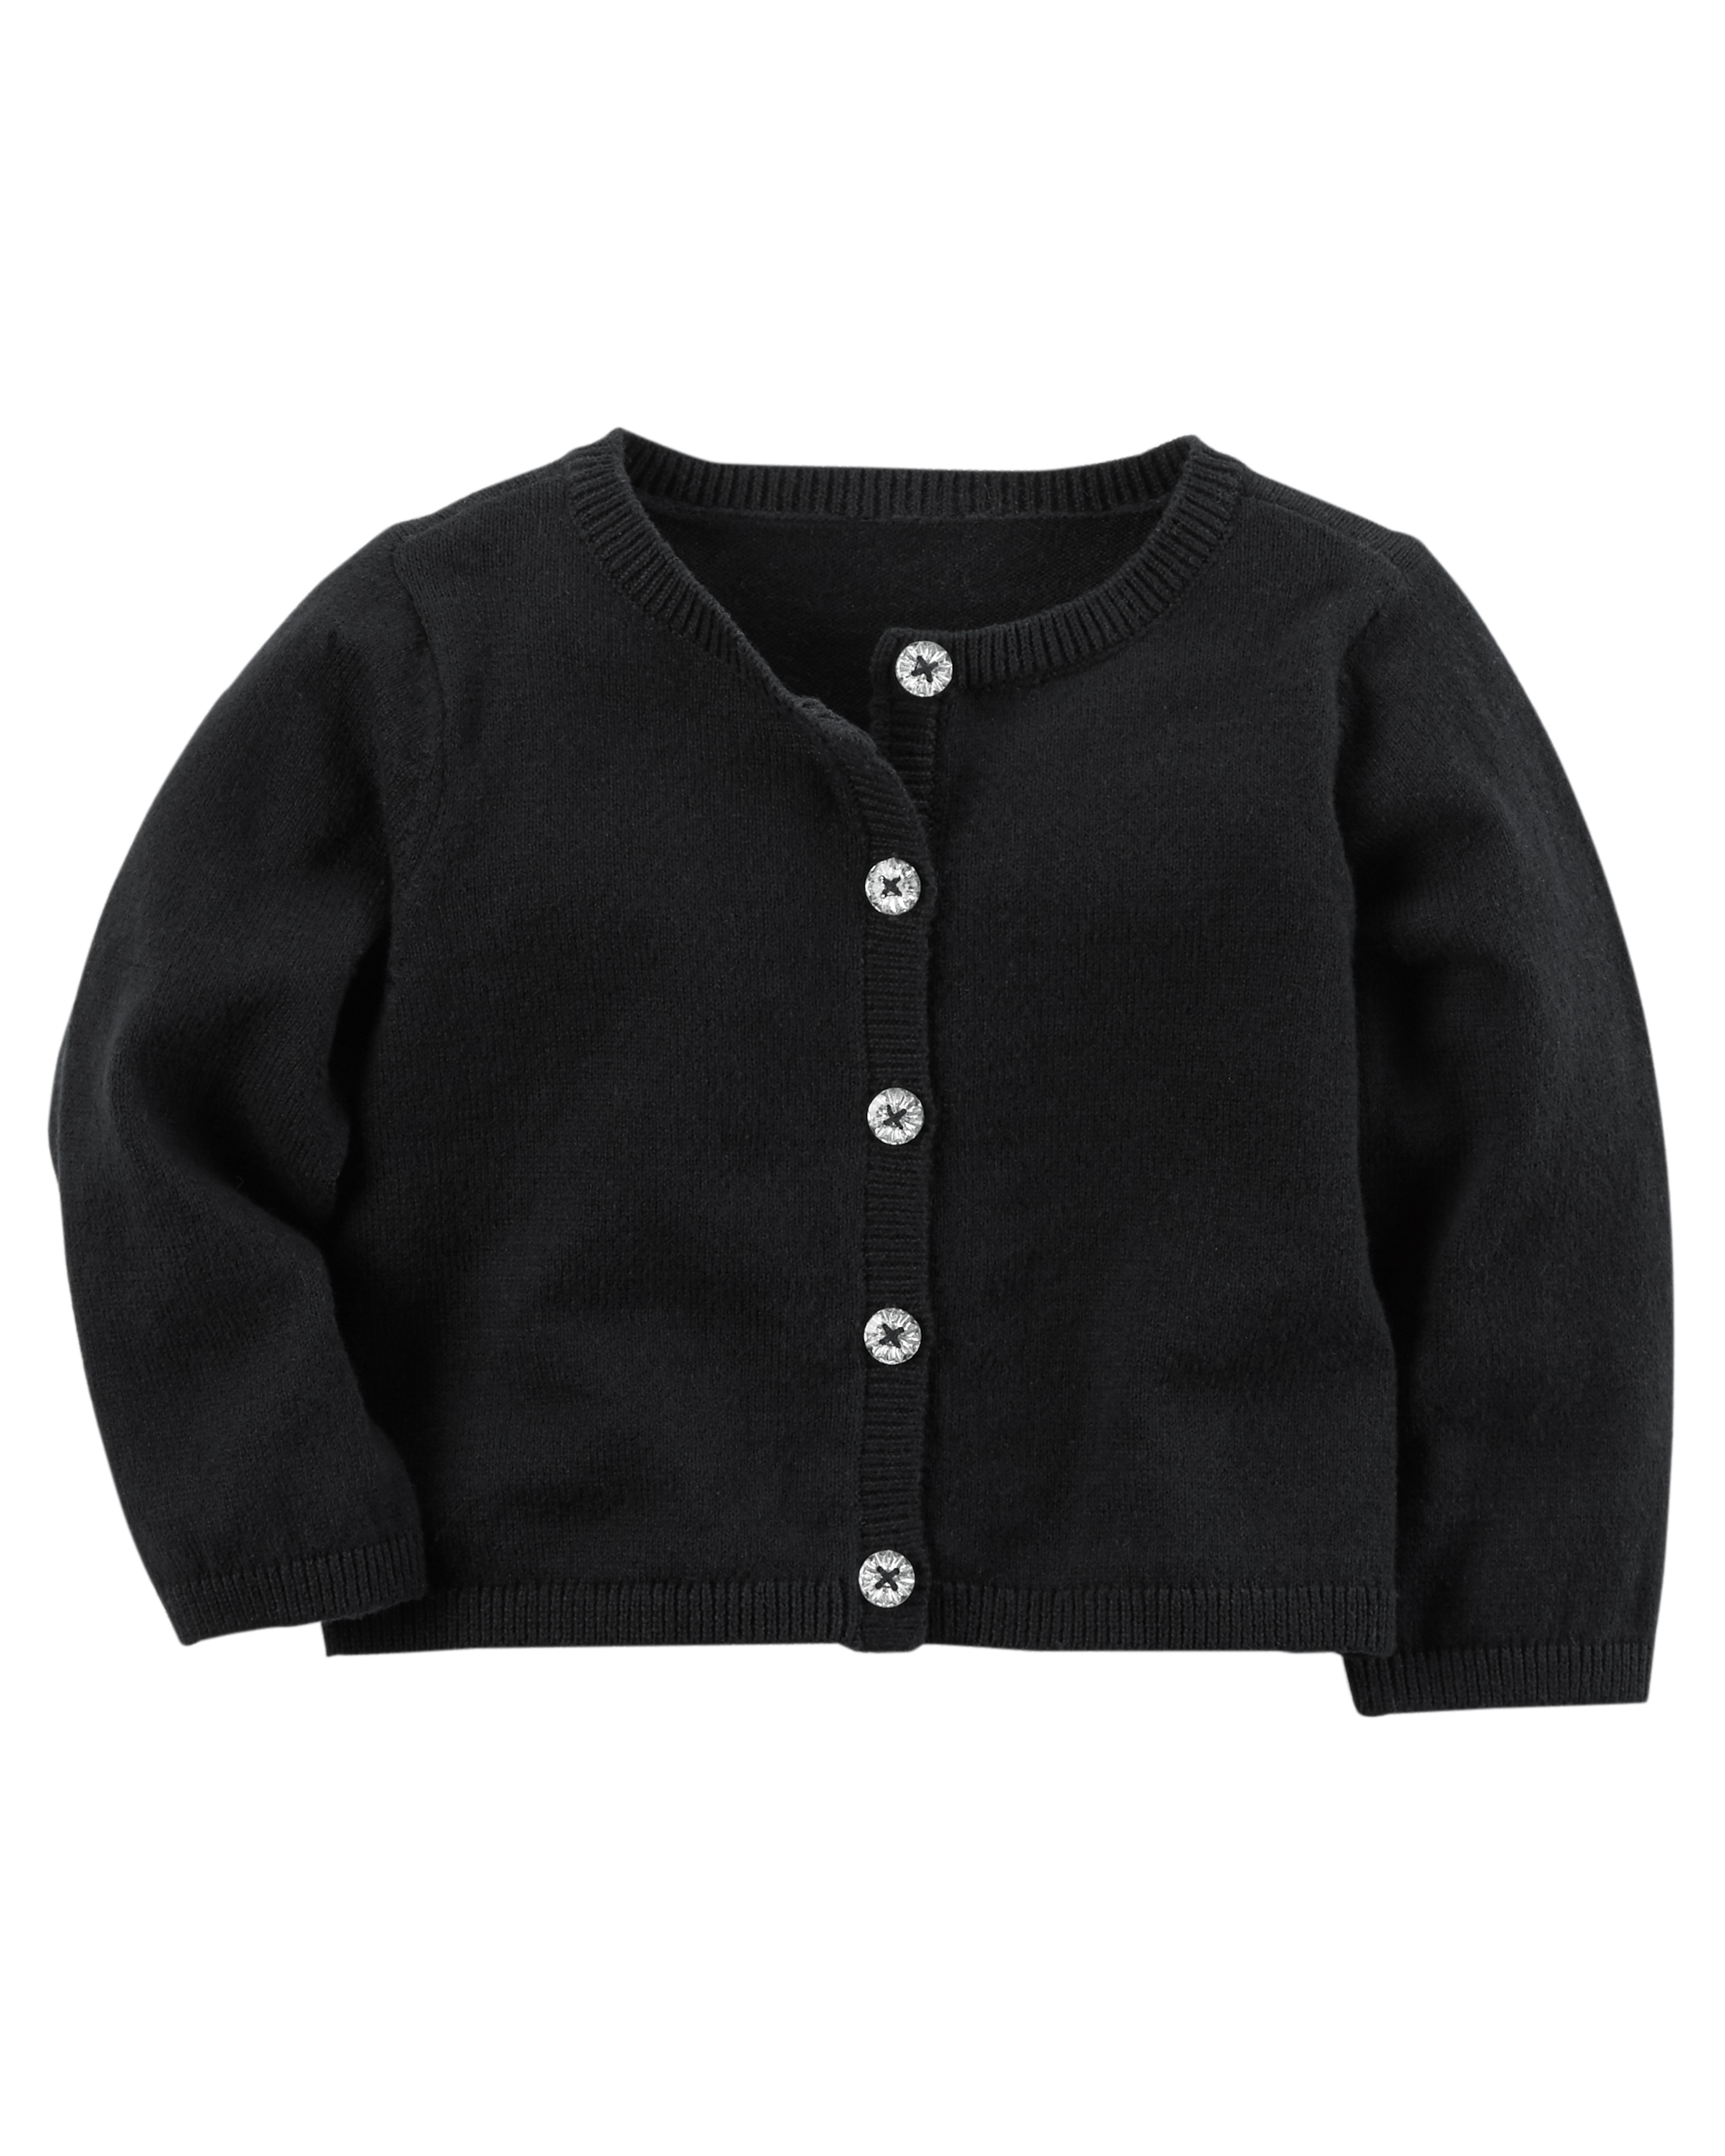 Boys Sweater | Carters.com